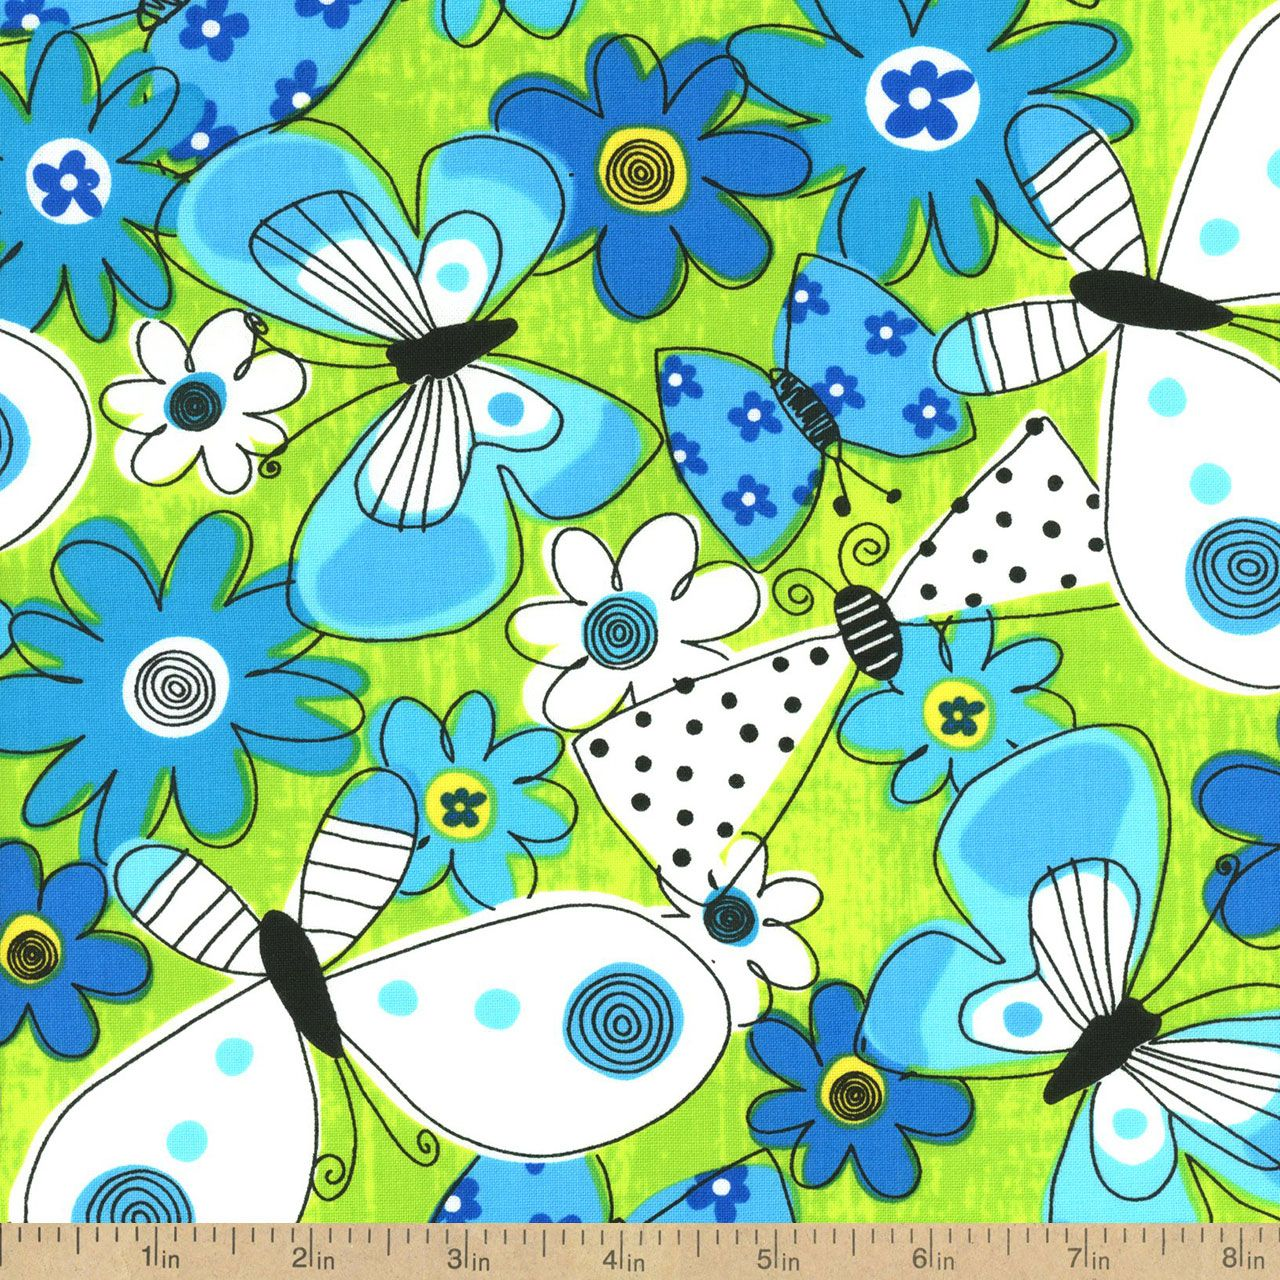 What a Whirl Butterfly Whirl Cotton Fabric - Lime by Beverlys.com